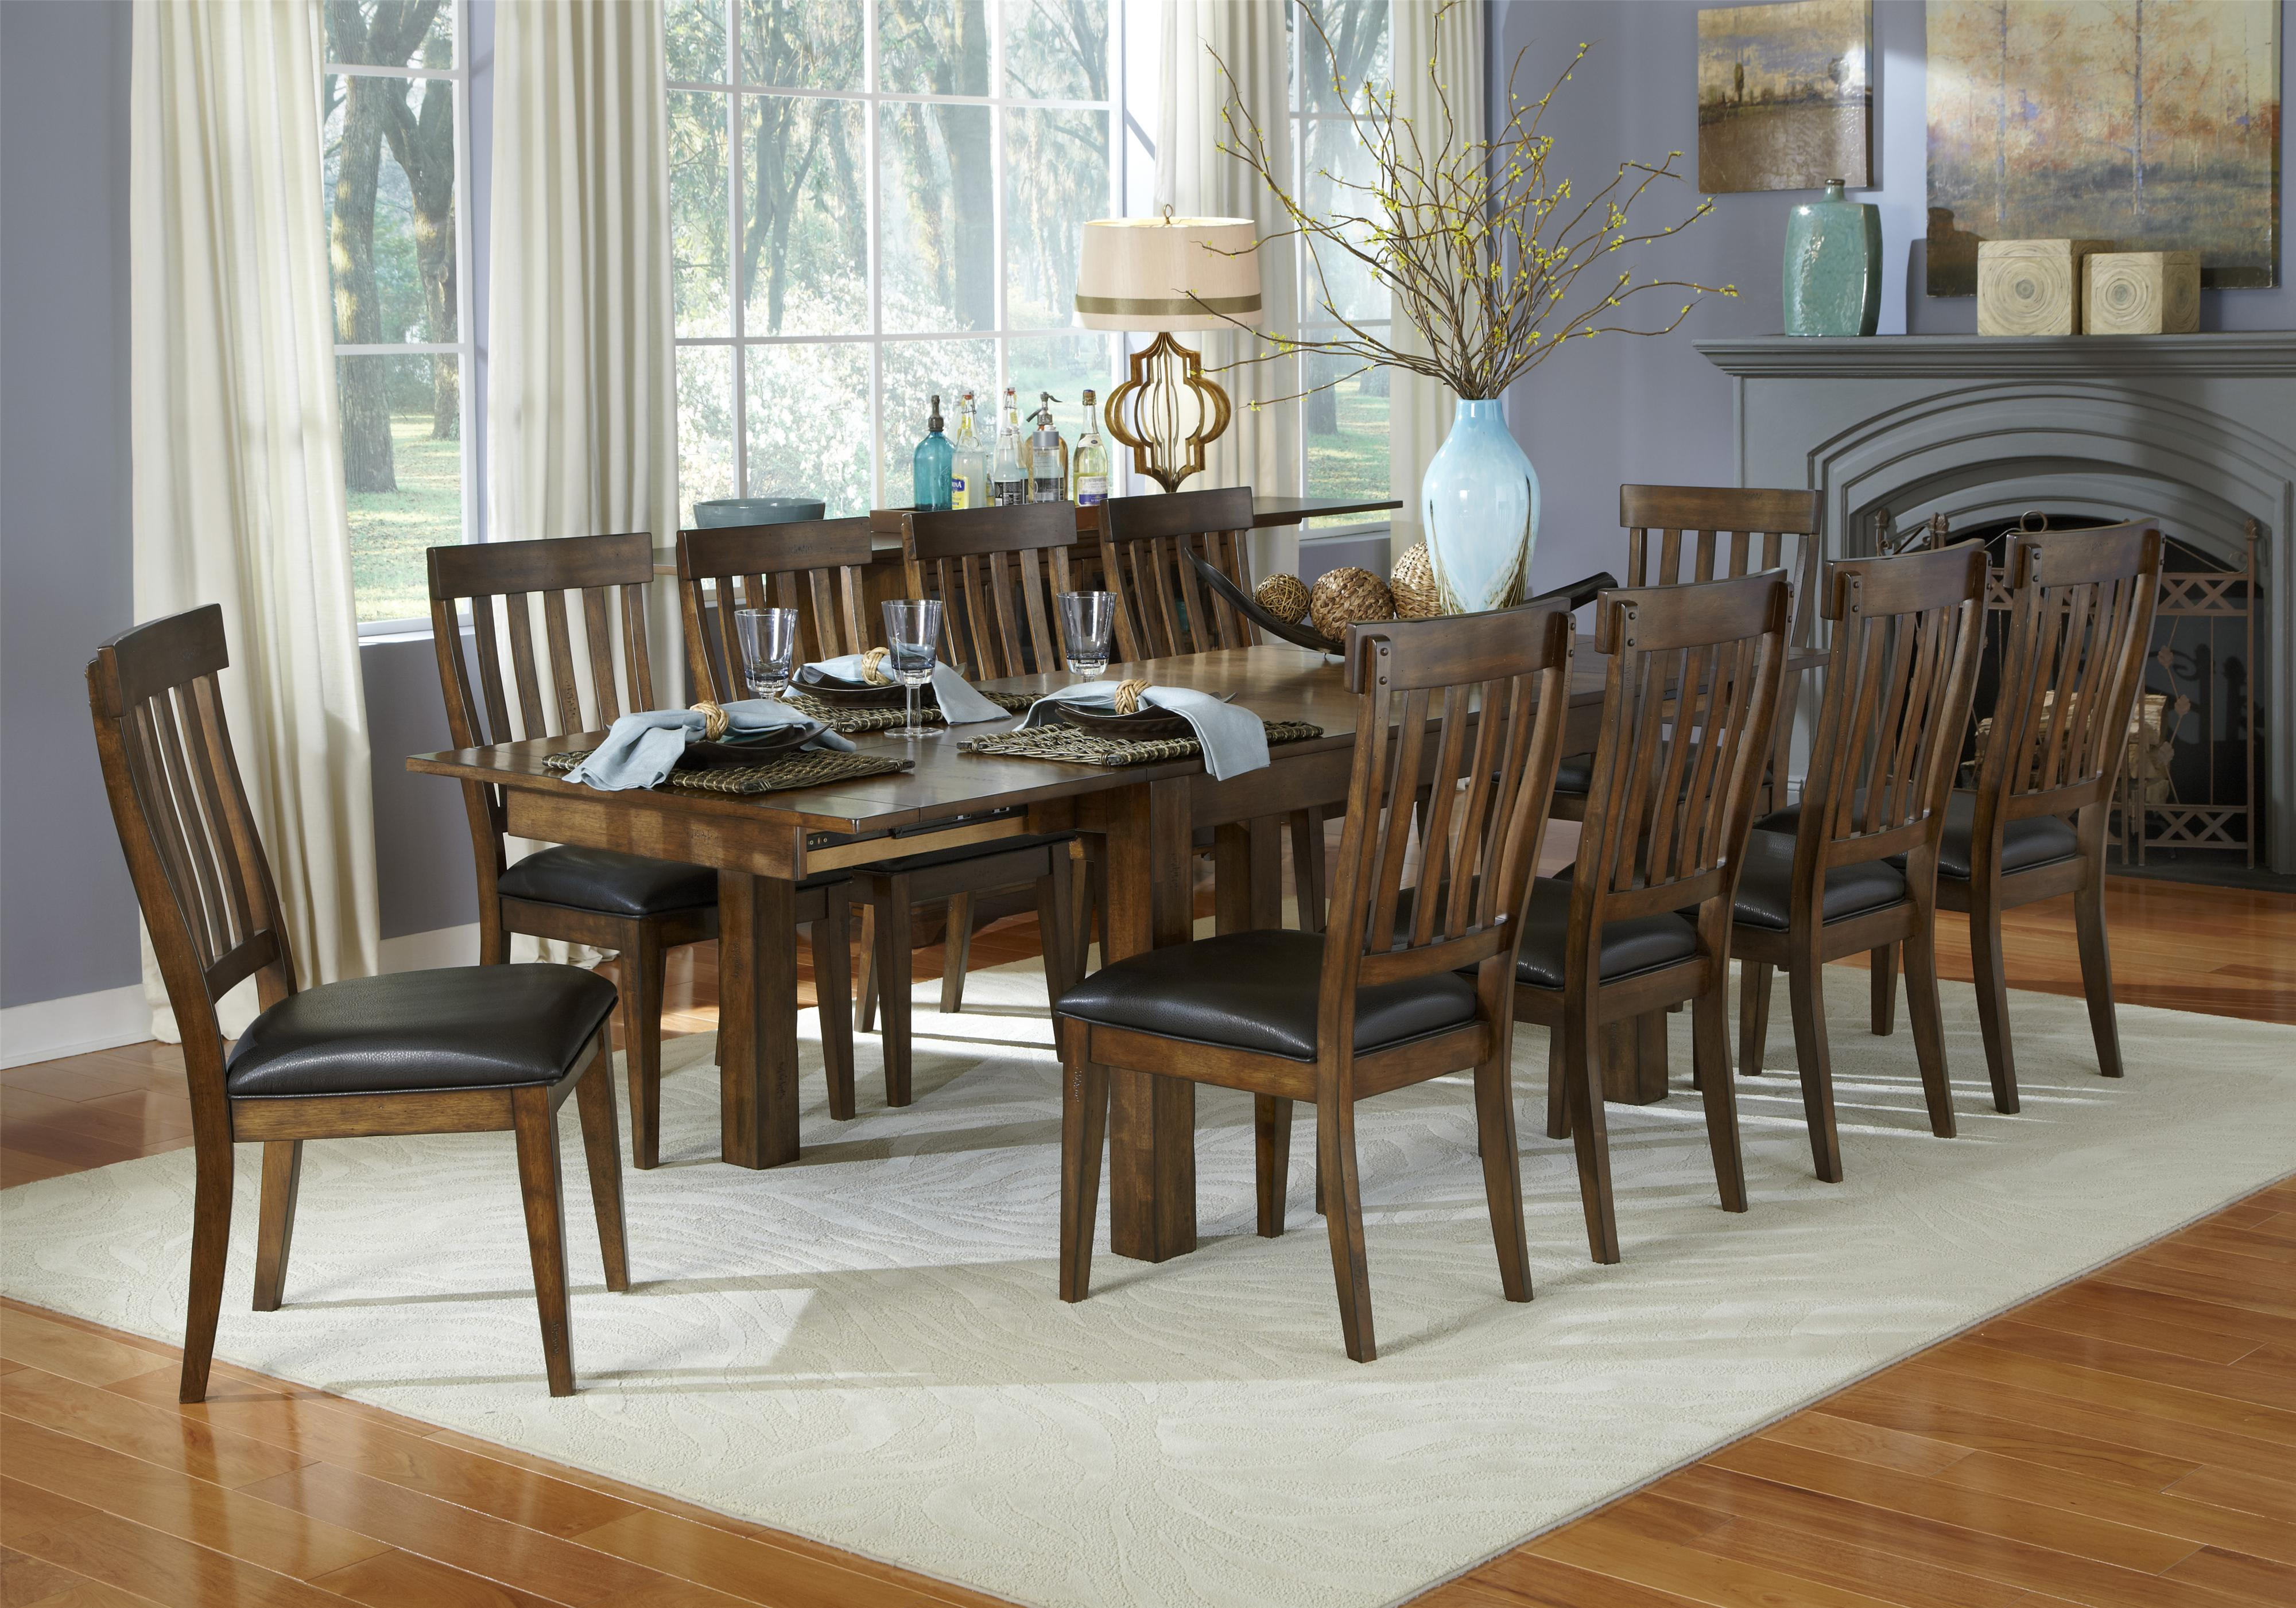 breakfast table and chairs set chair covers dunnes stores 11 piece dining slatback by aamerica